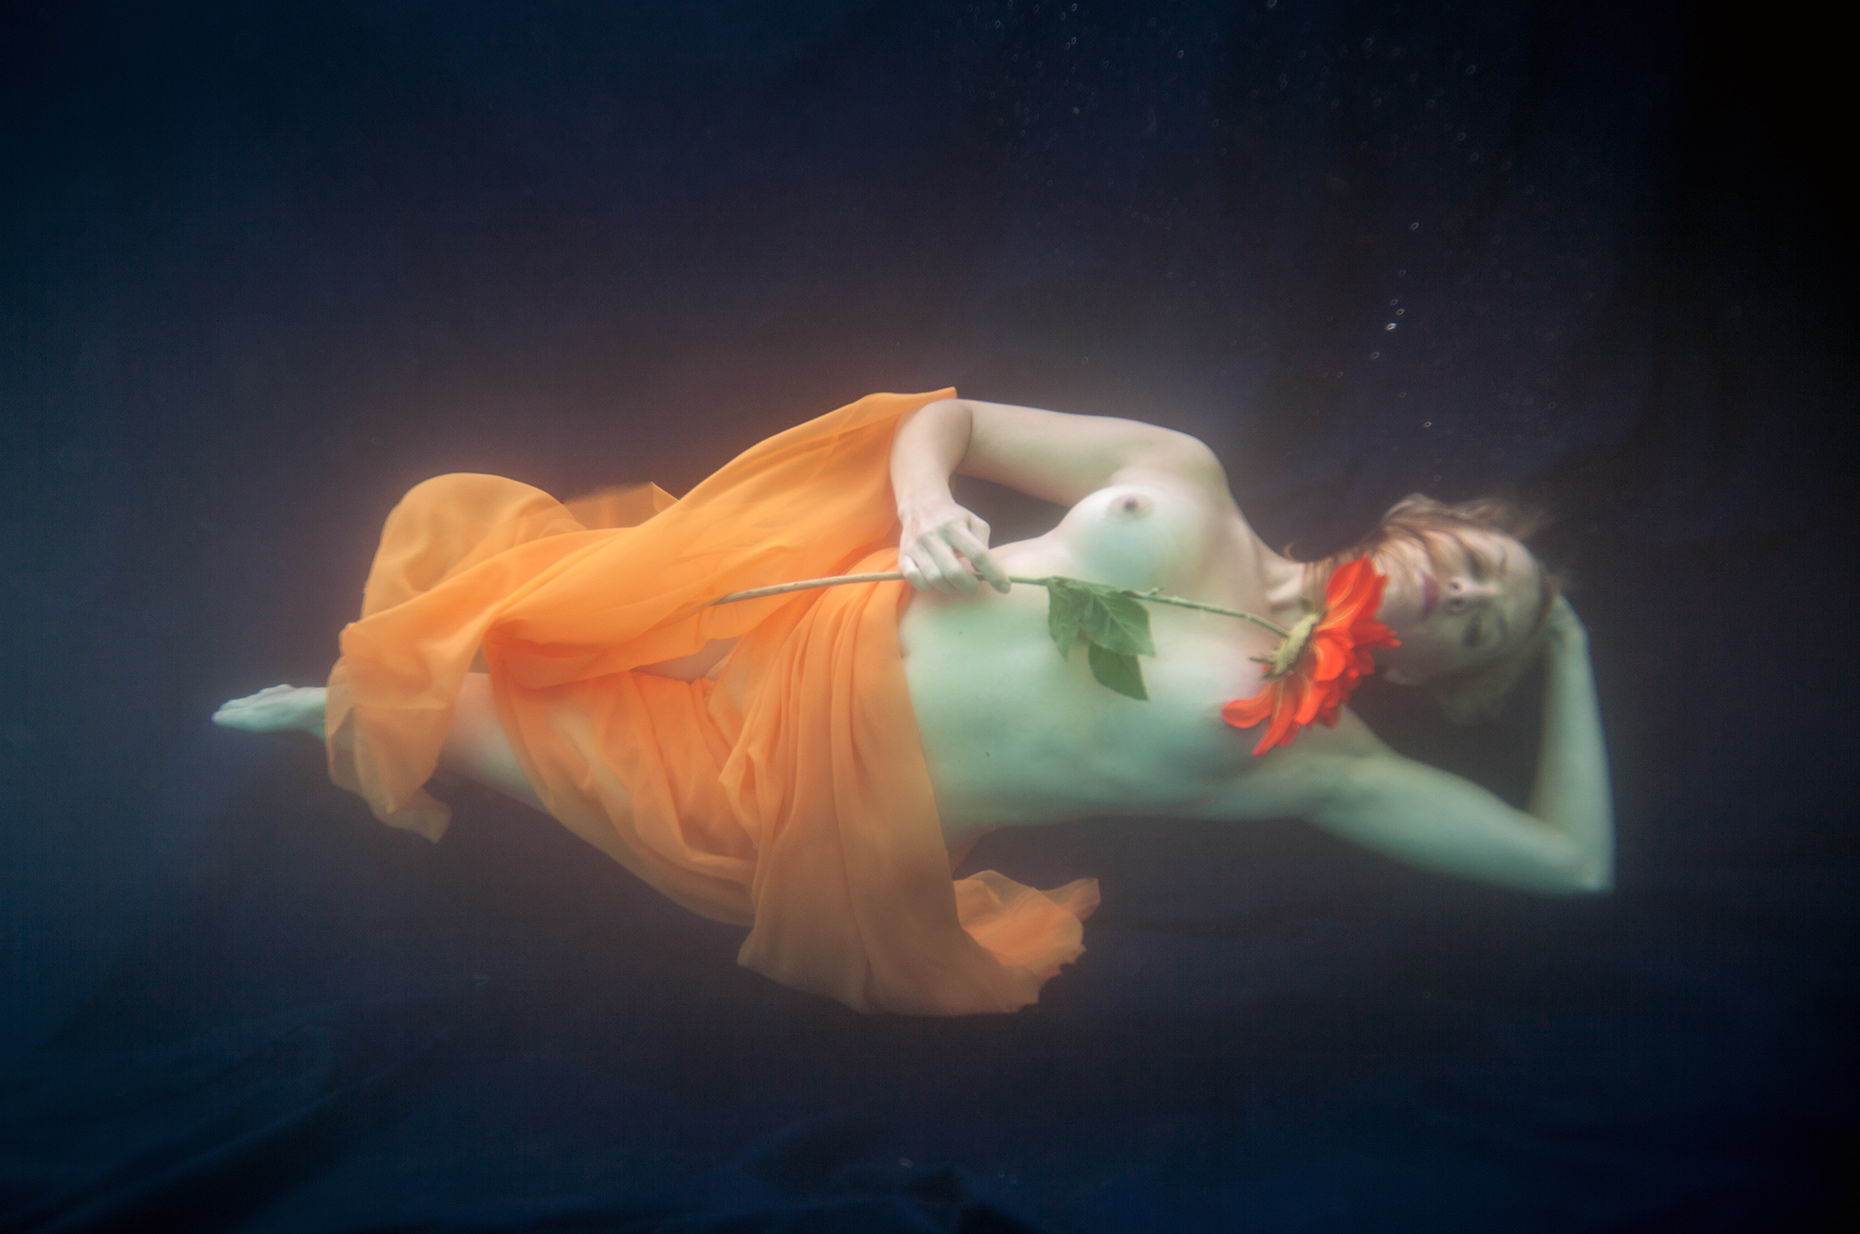 underwater fine art photograph of topless women holding large flower. Advertising photograph floating in the water sidewise. Editorial Portrait.